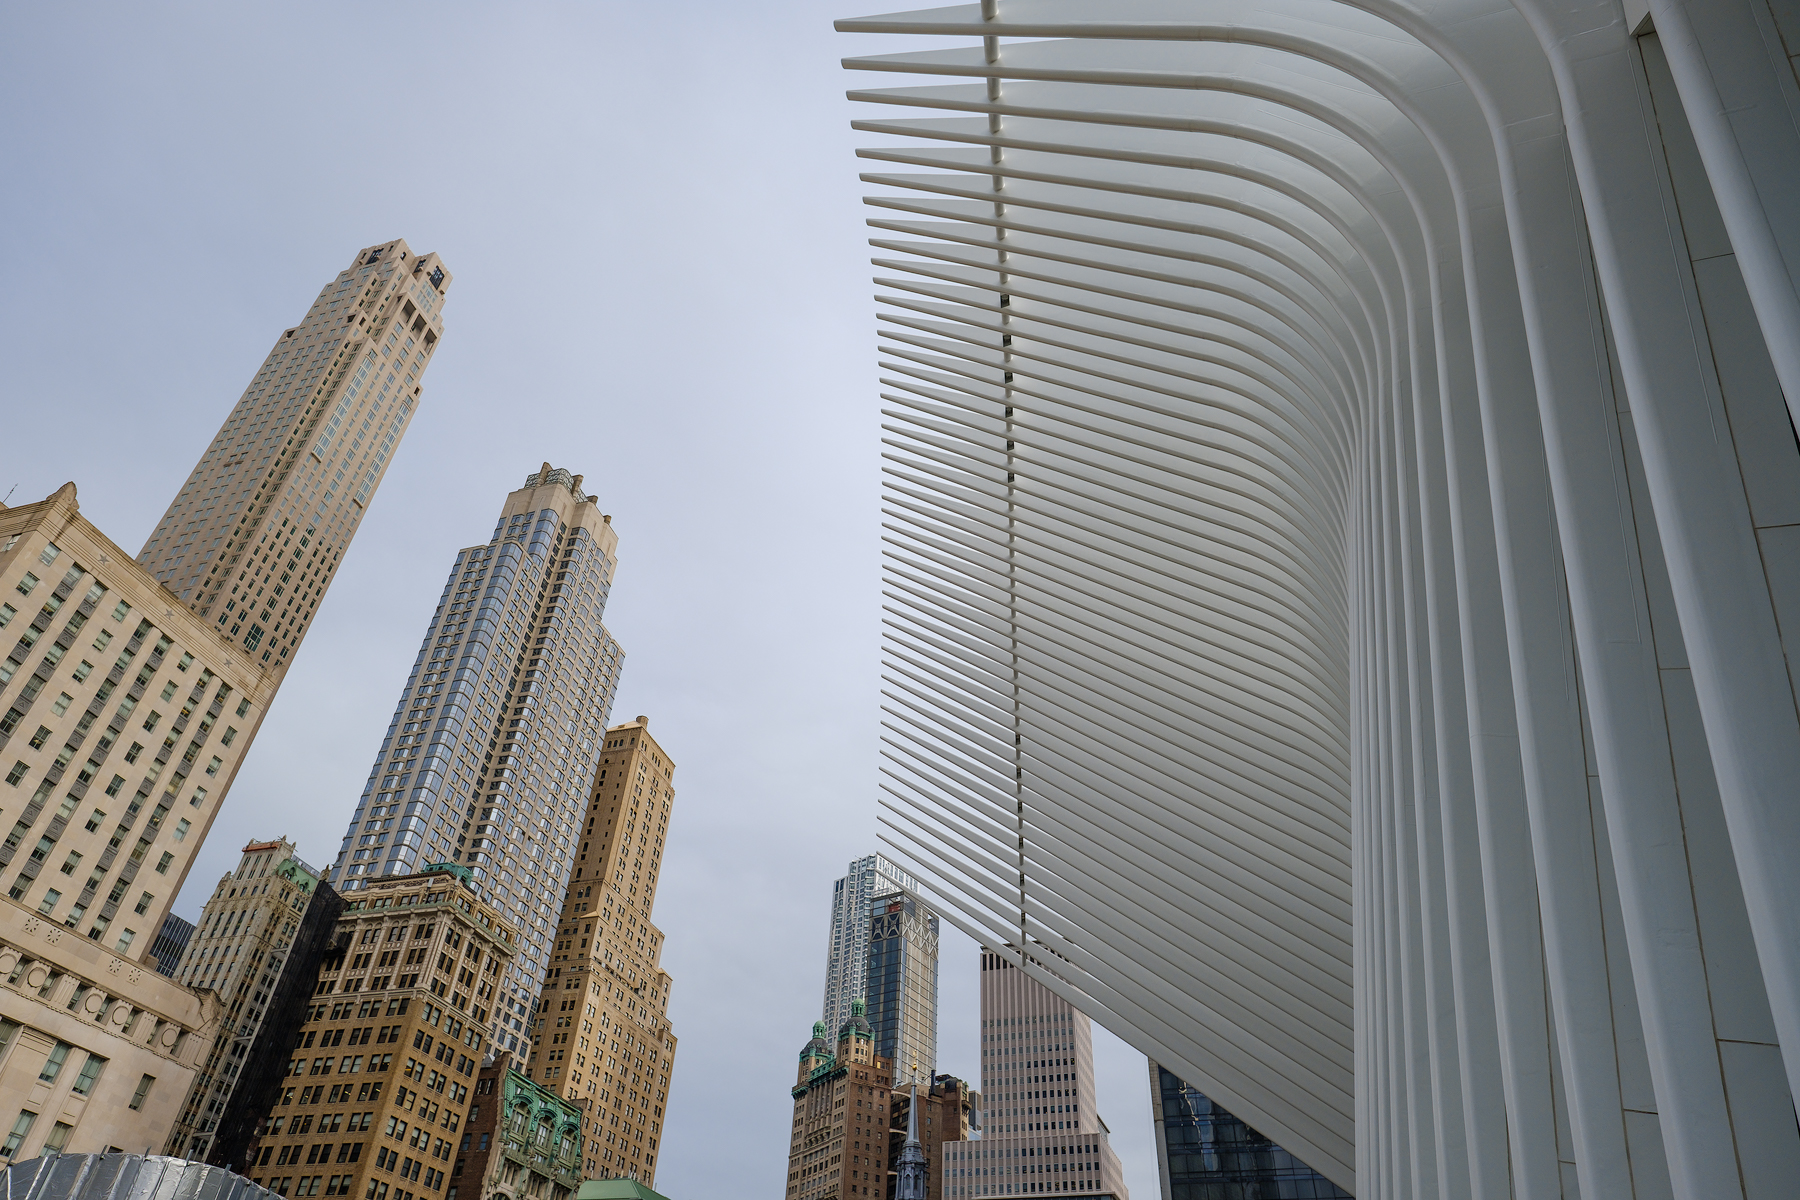 The linear forms of the Oculus super structure stand in stark contrast to the buildings of New York. Astia Film Emulation.